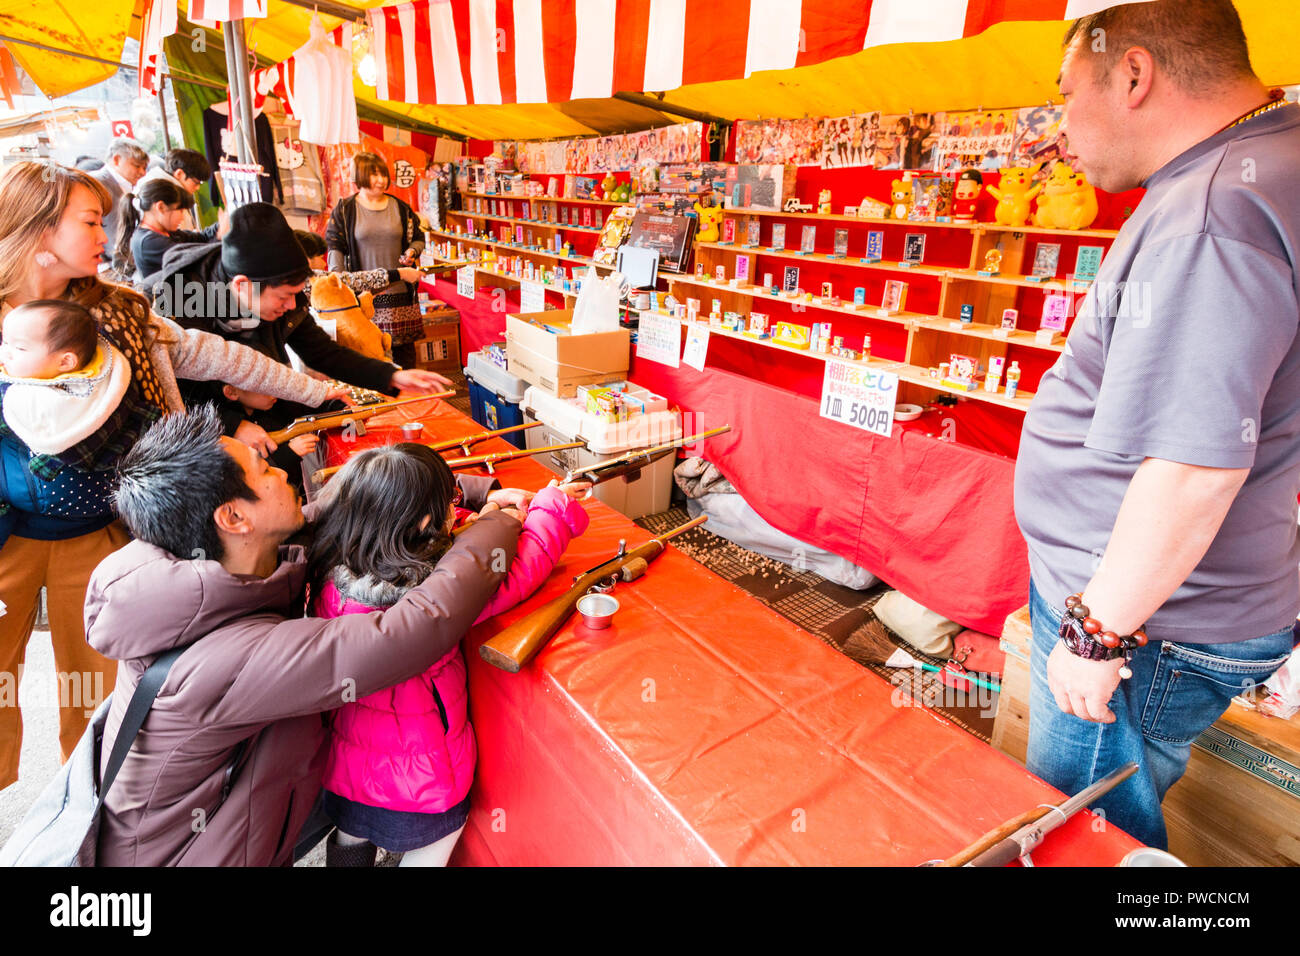 Japanese children's shooting gallery at stall during festival. Father kneeling down and helping his young daughter to hold rifle and aiming at target. - Stock Image